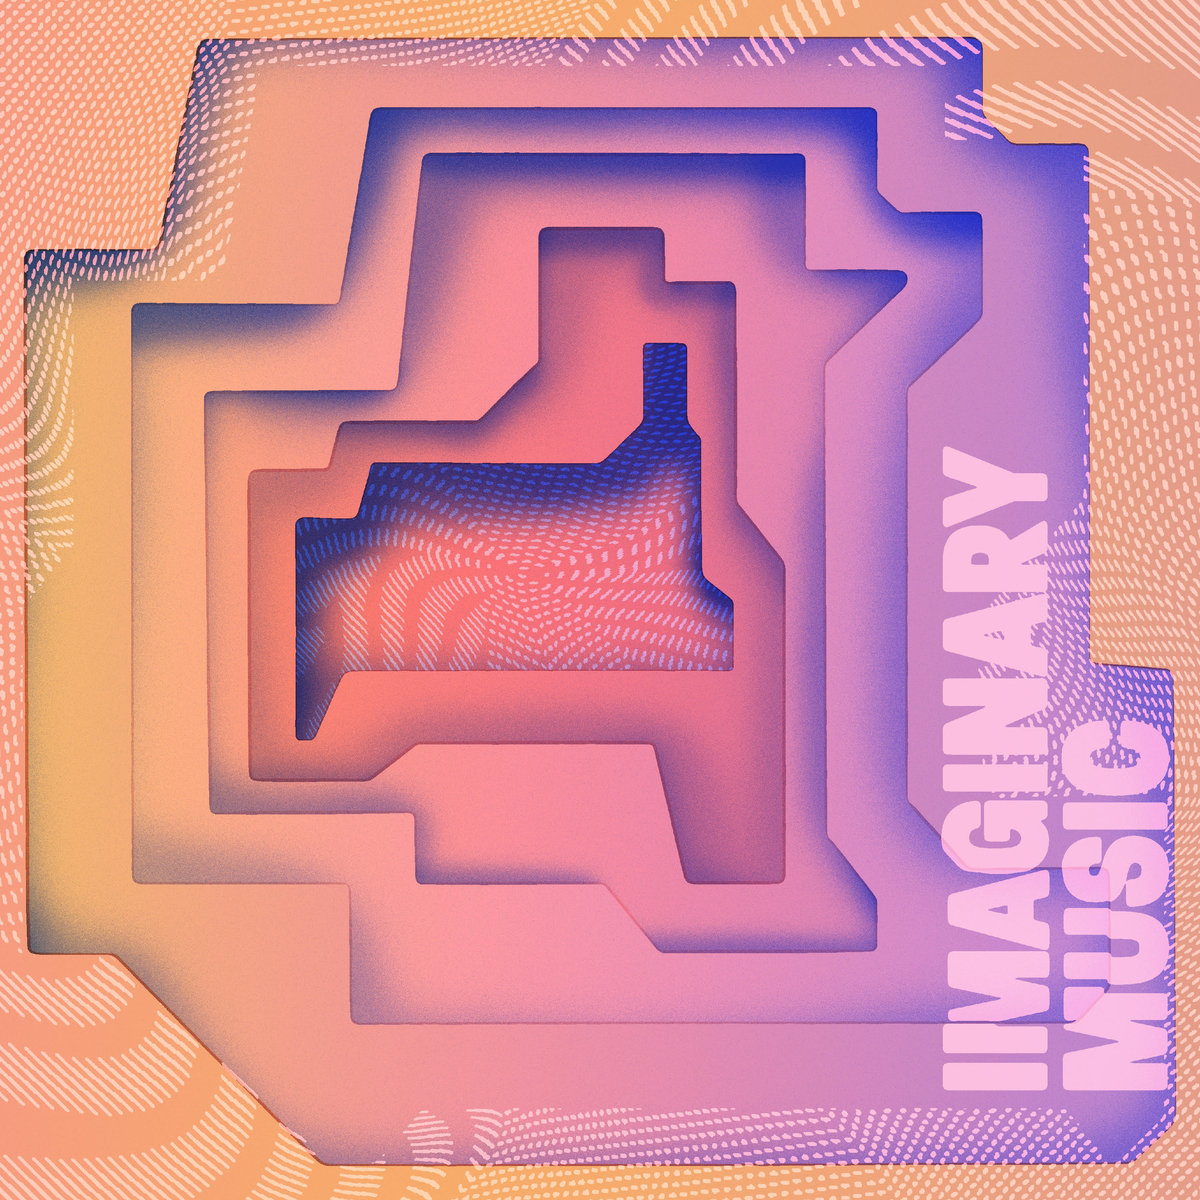 Northern Transmissions' review of 'Imaginary Music' by Chad Valley